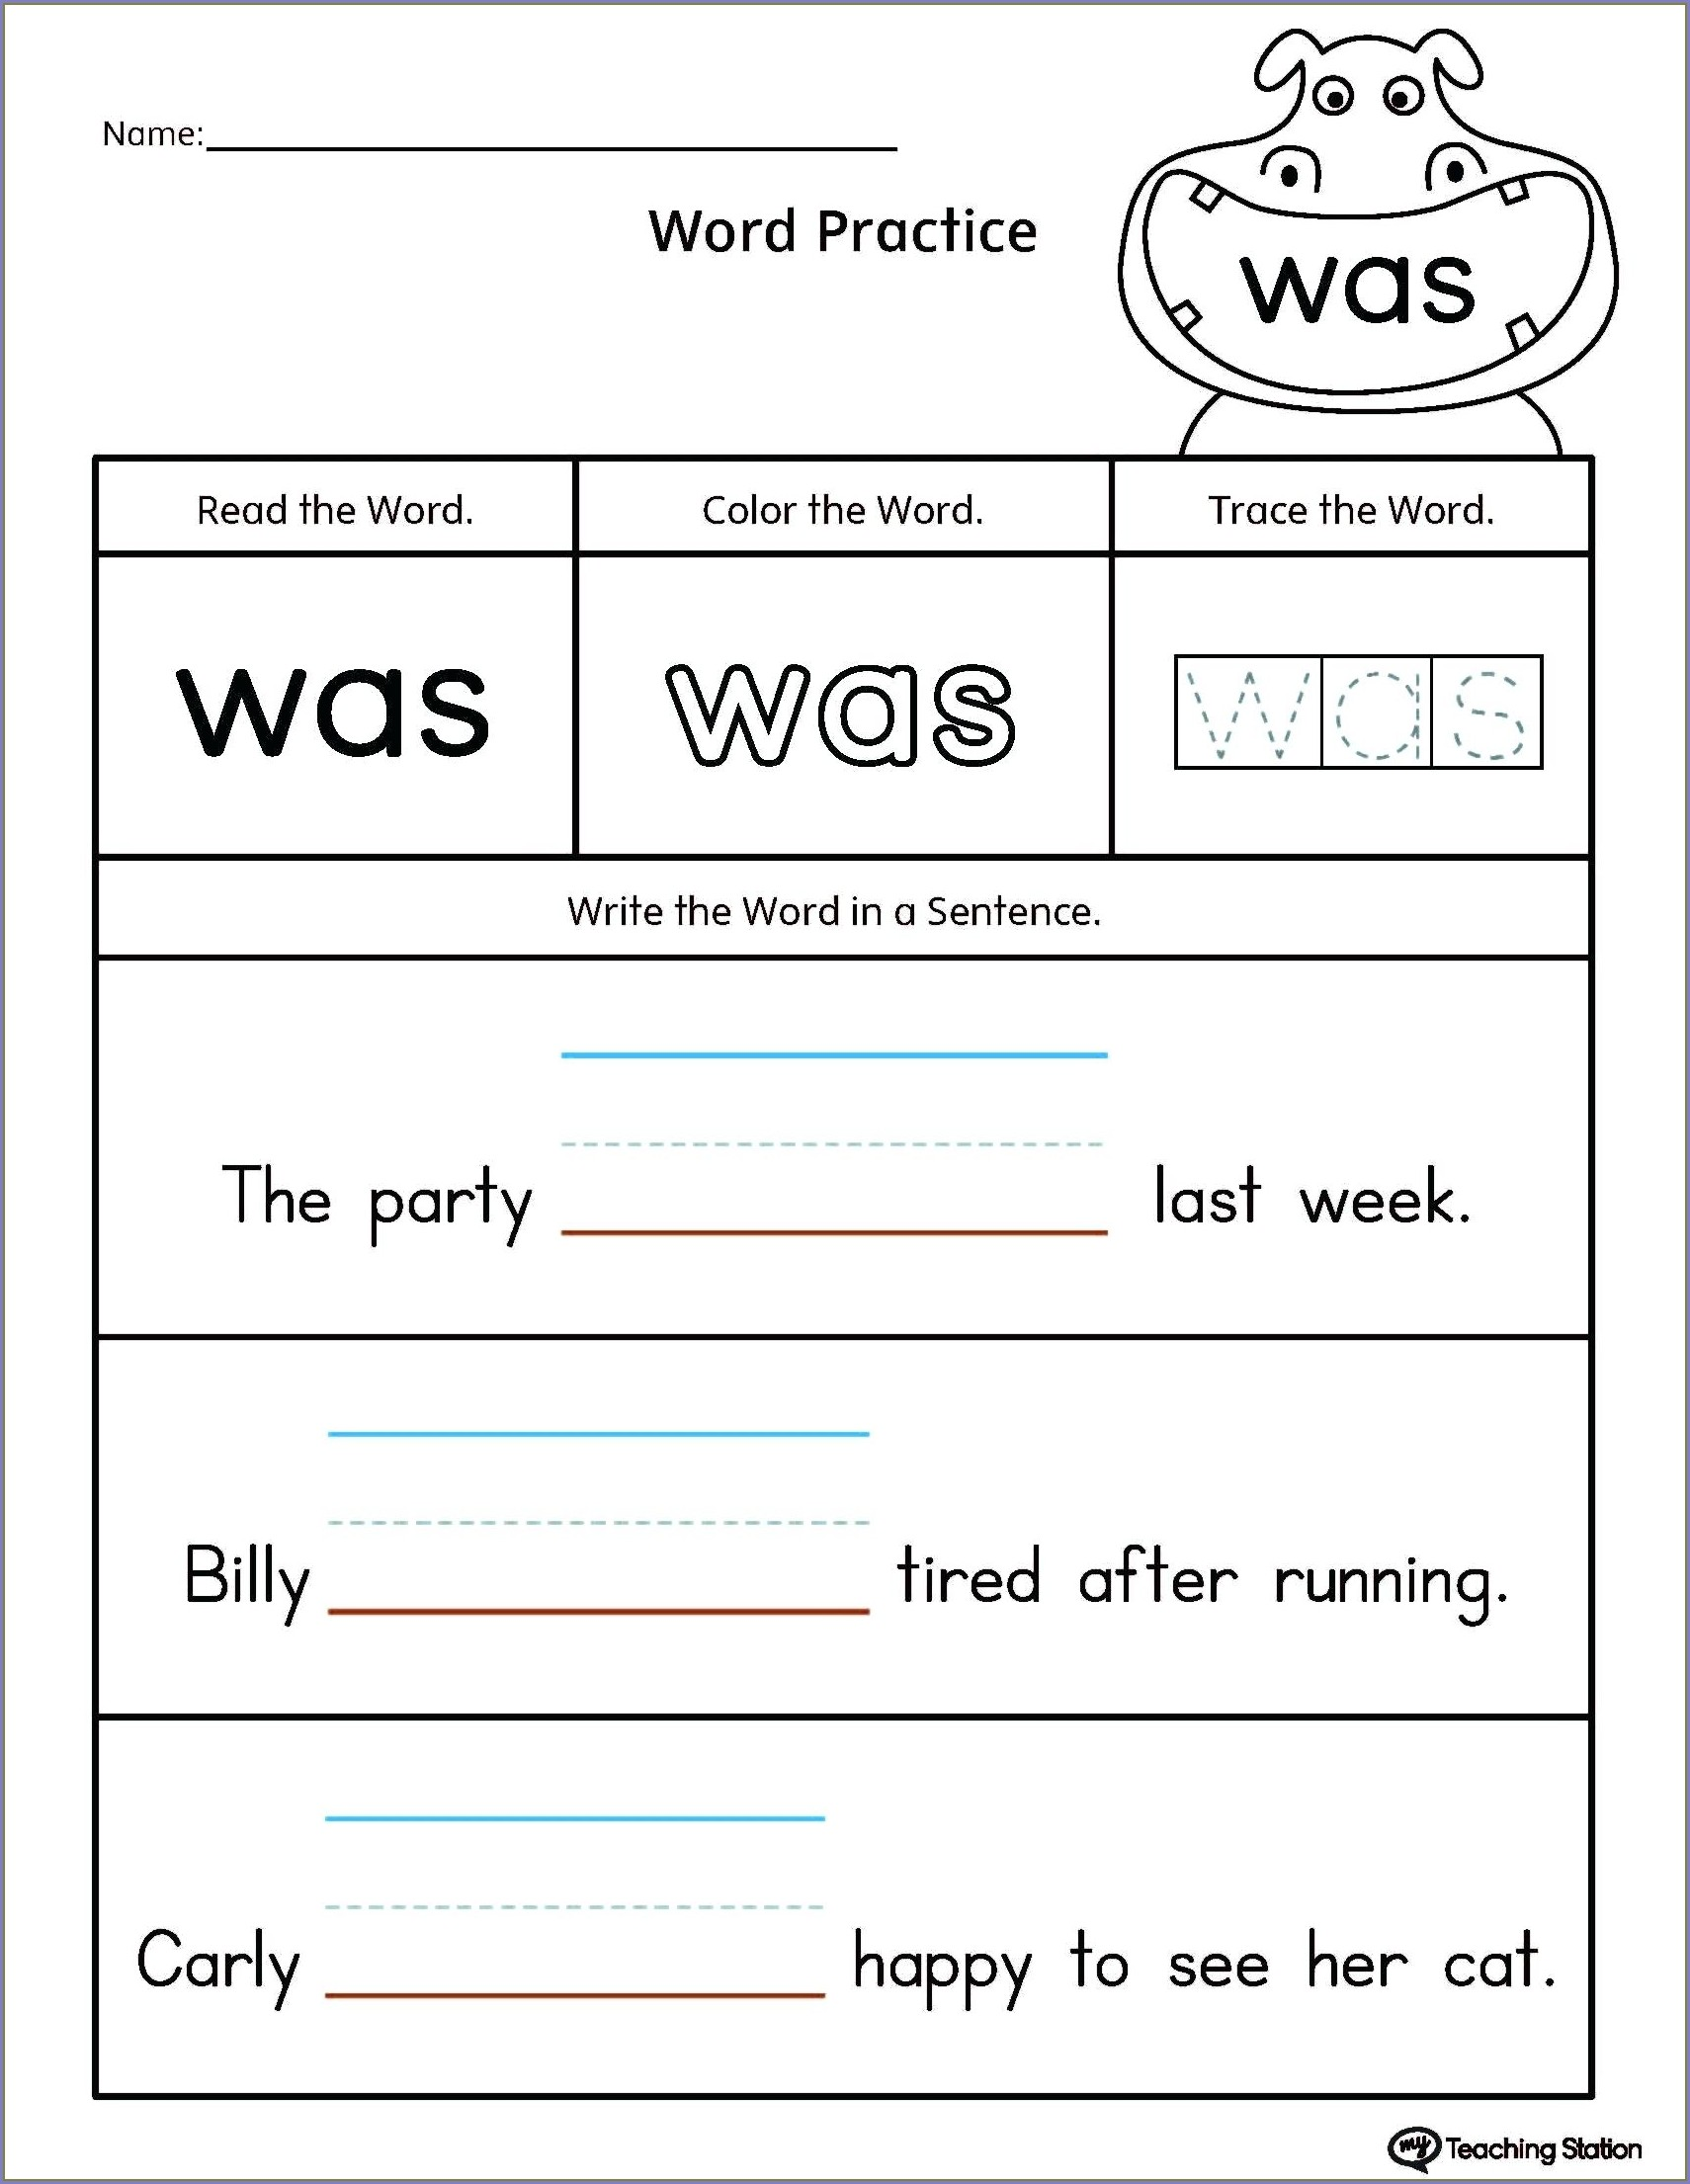 What Sight Word Worksheet